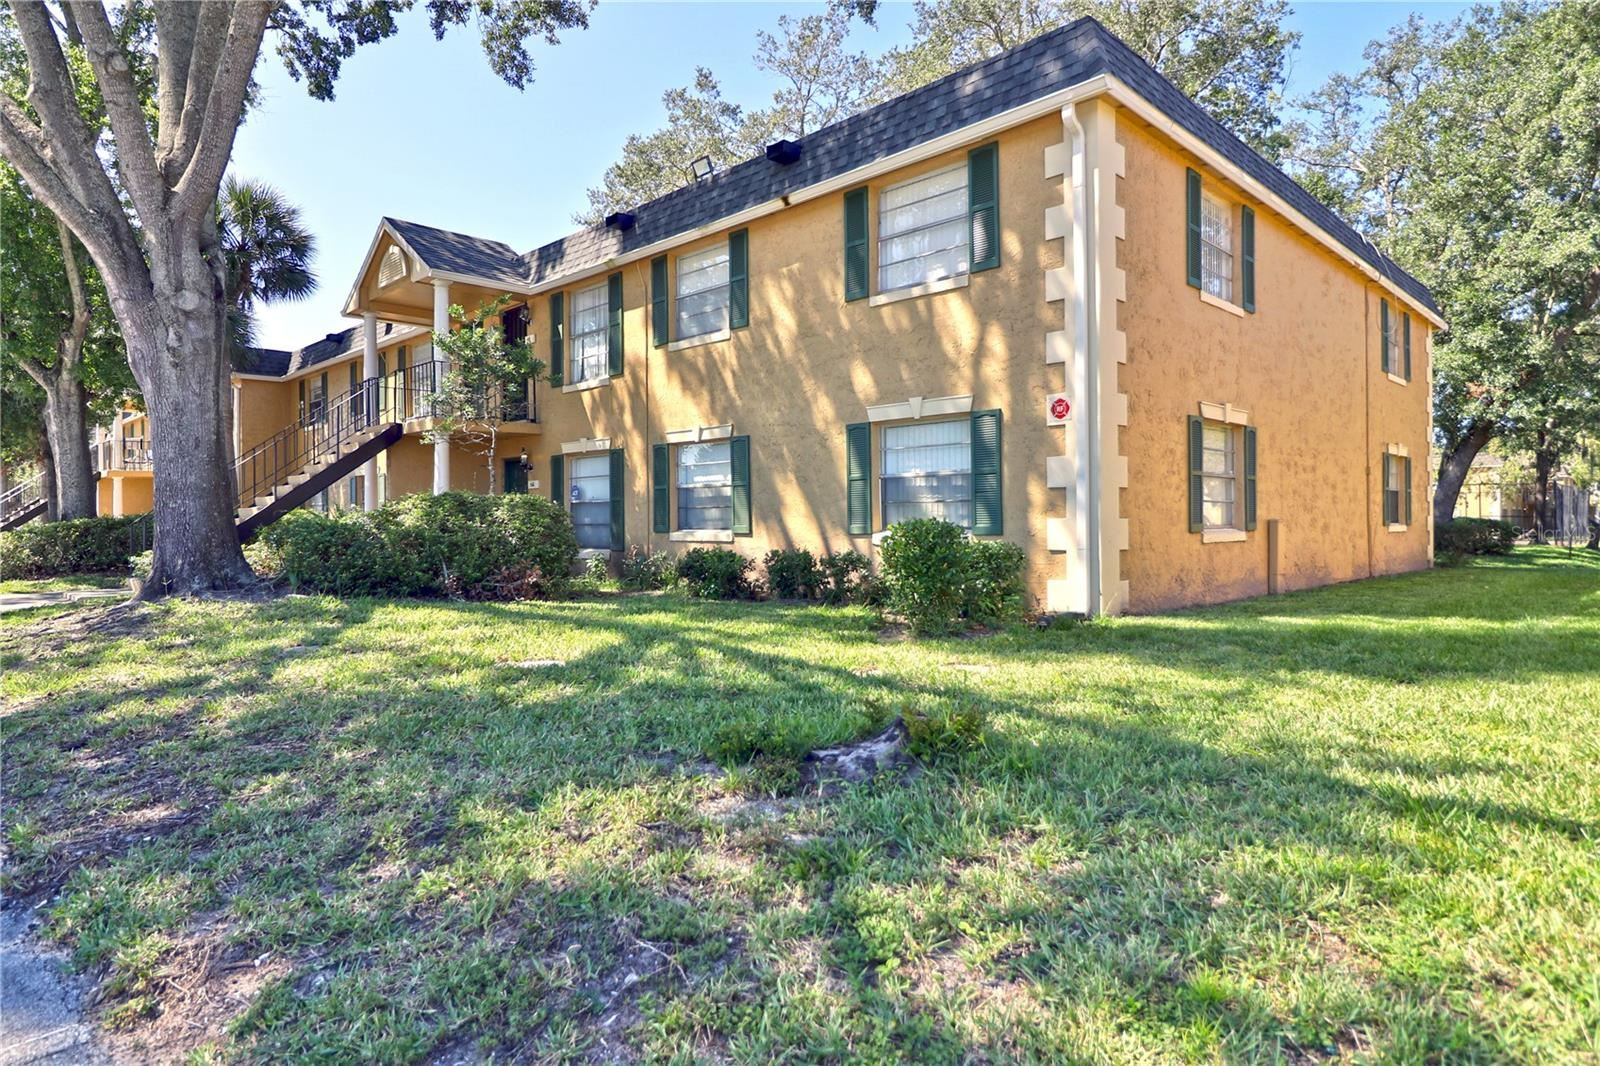 Photo of 7606 FOREST CITY ROAD #A, ORLANDO, FL 32810 (MLS # O5975637)